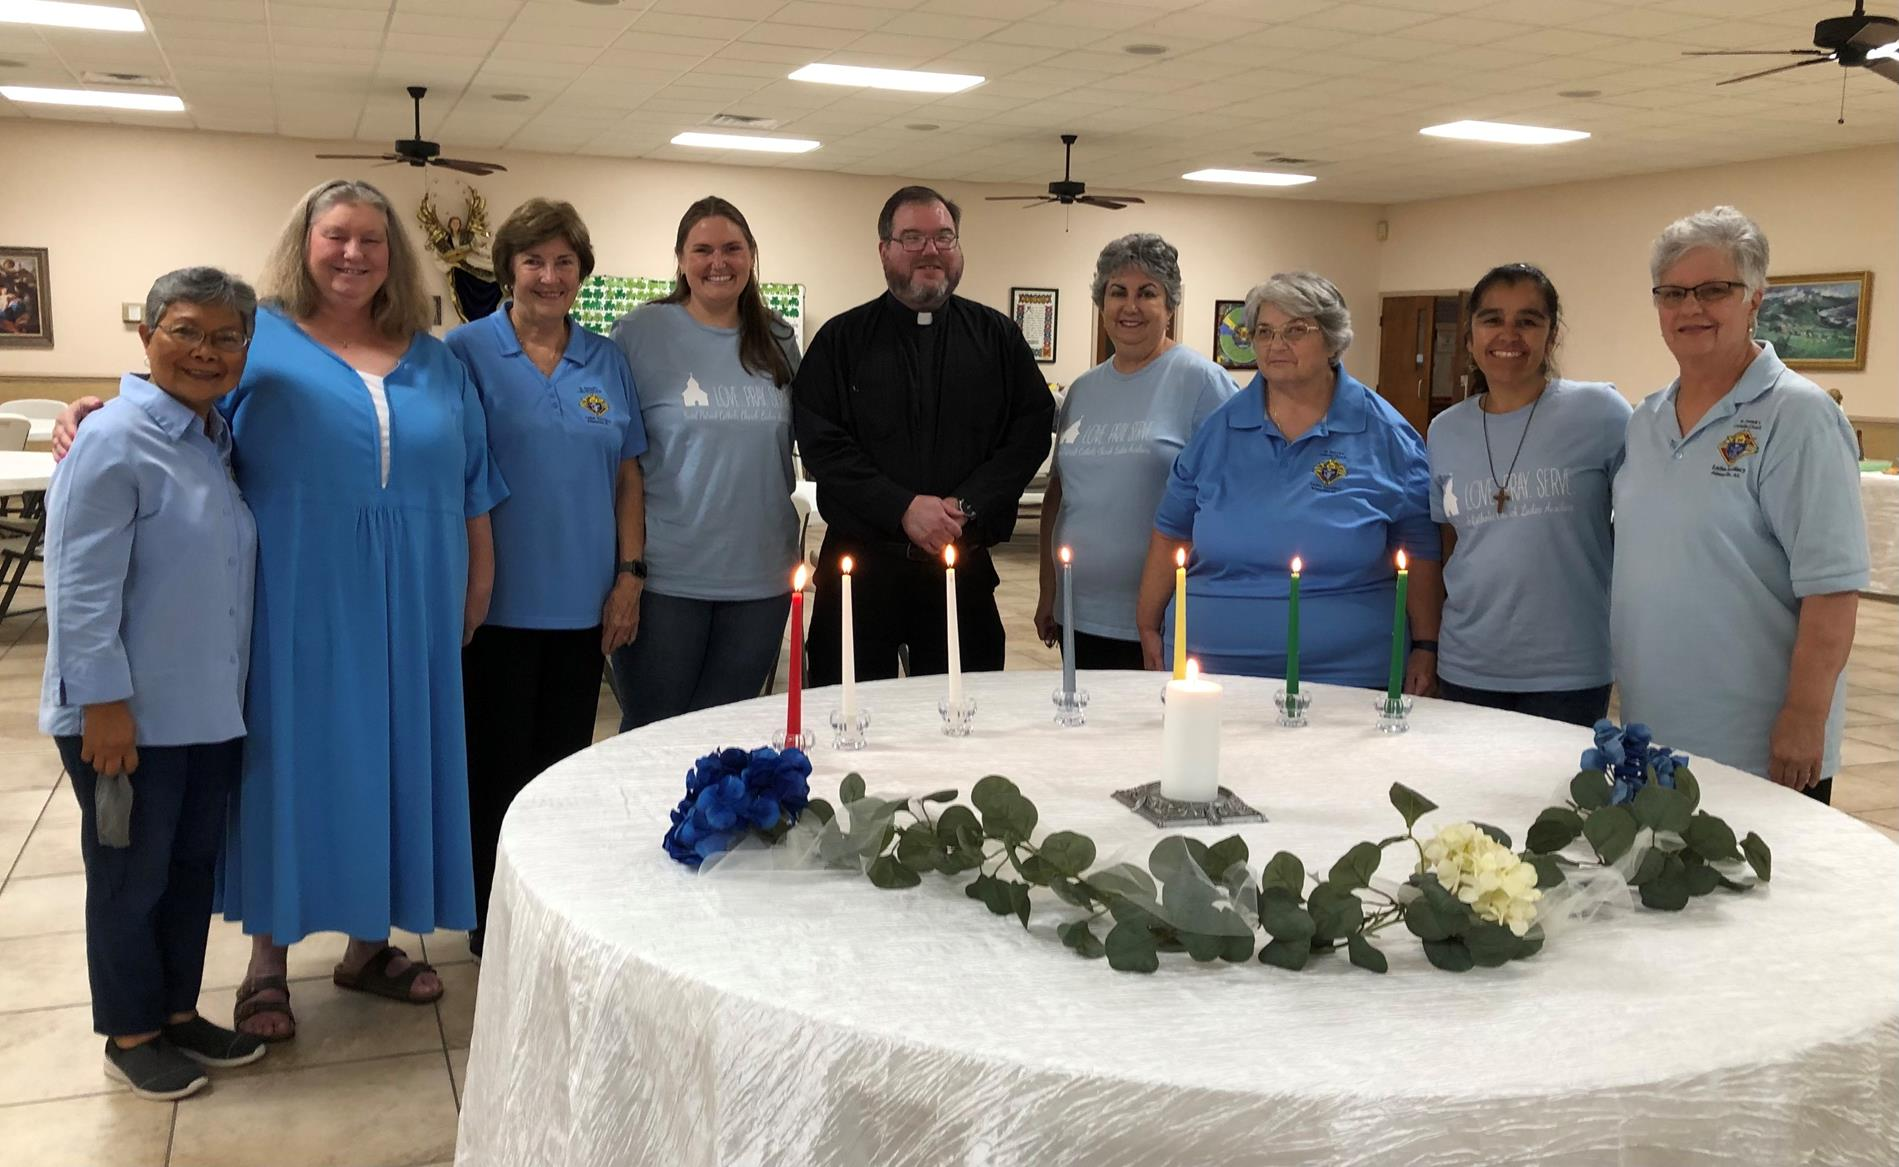 Officers with Fr. Weis